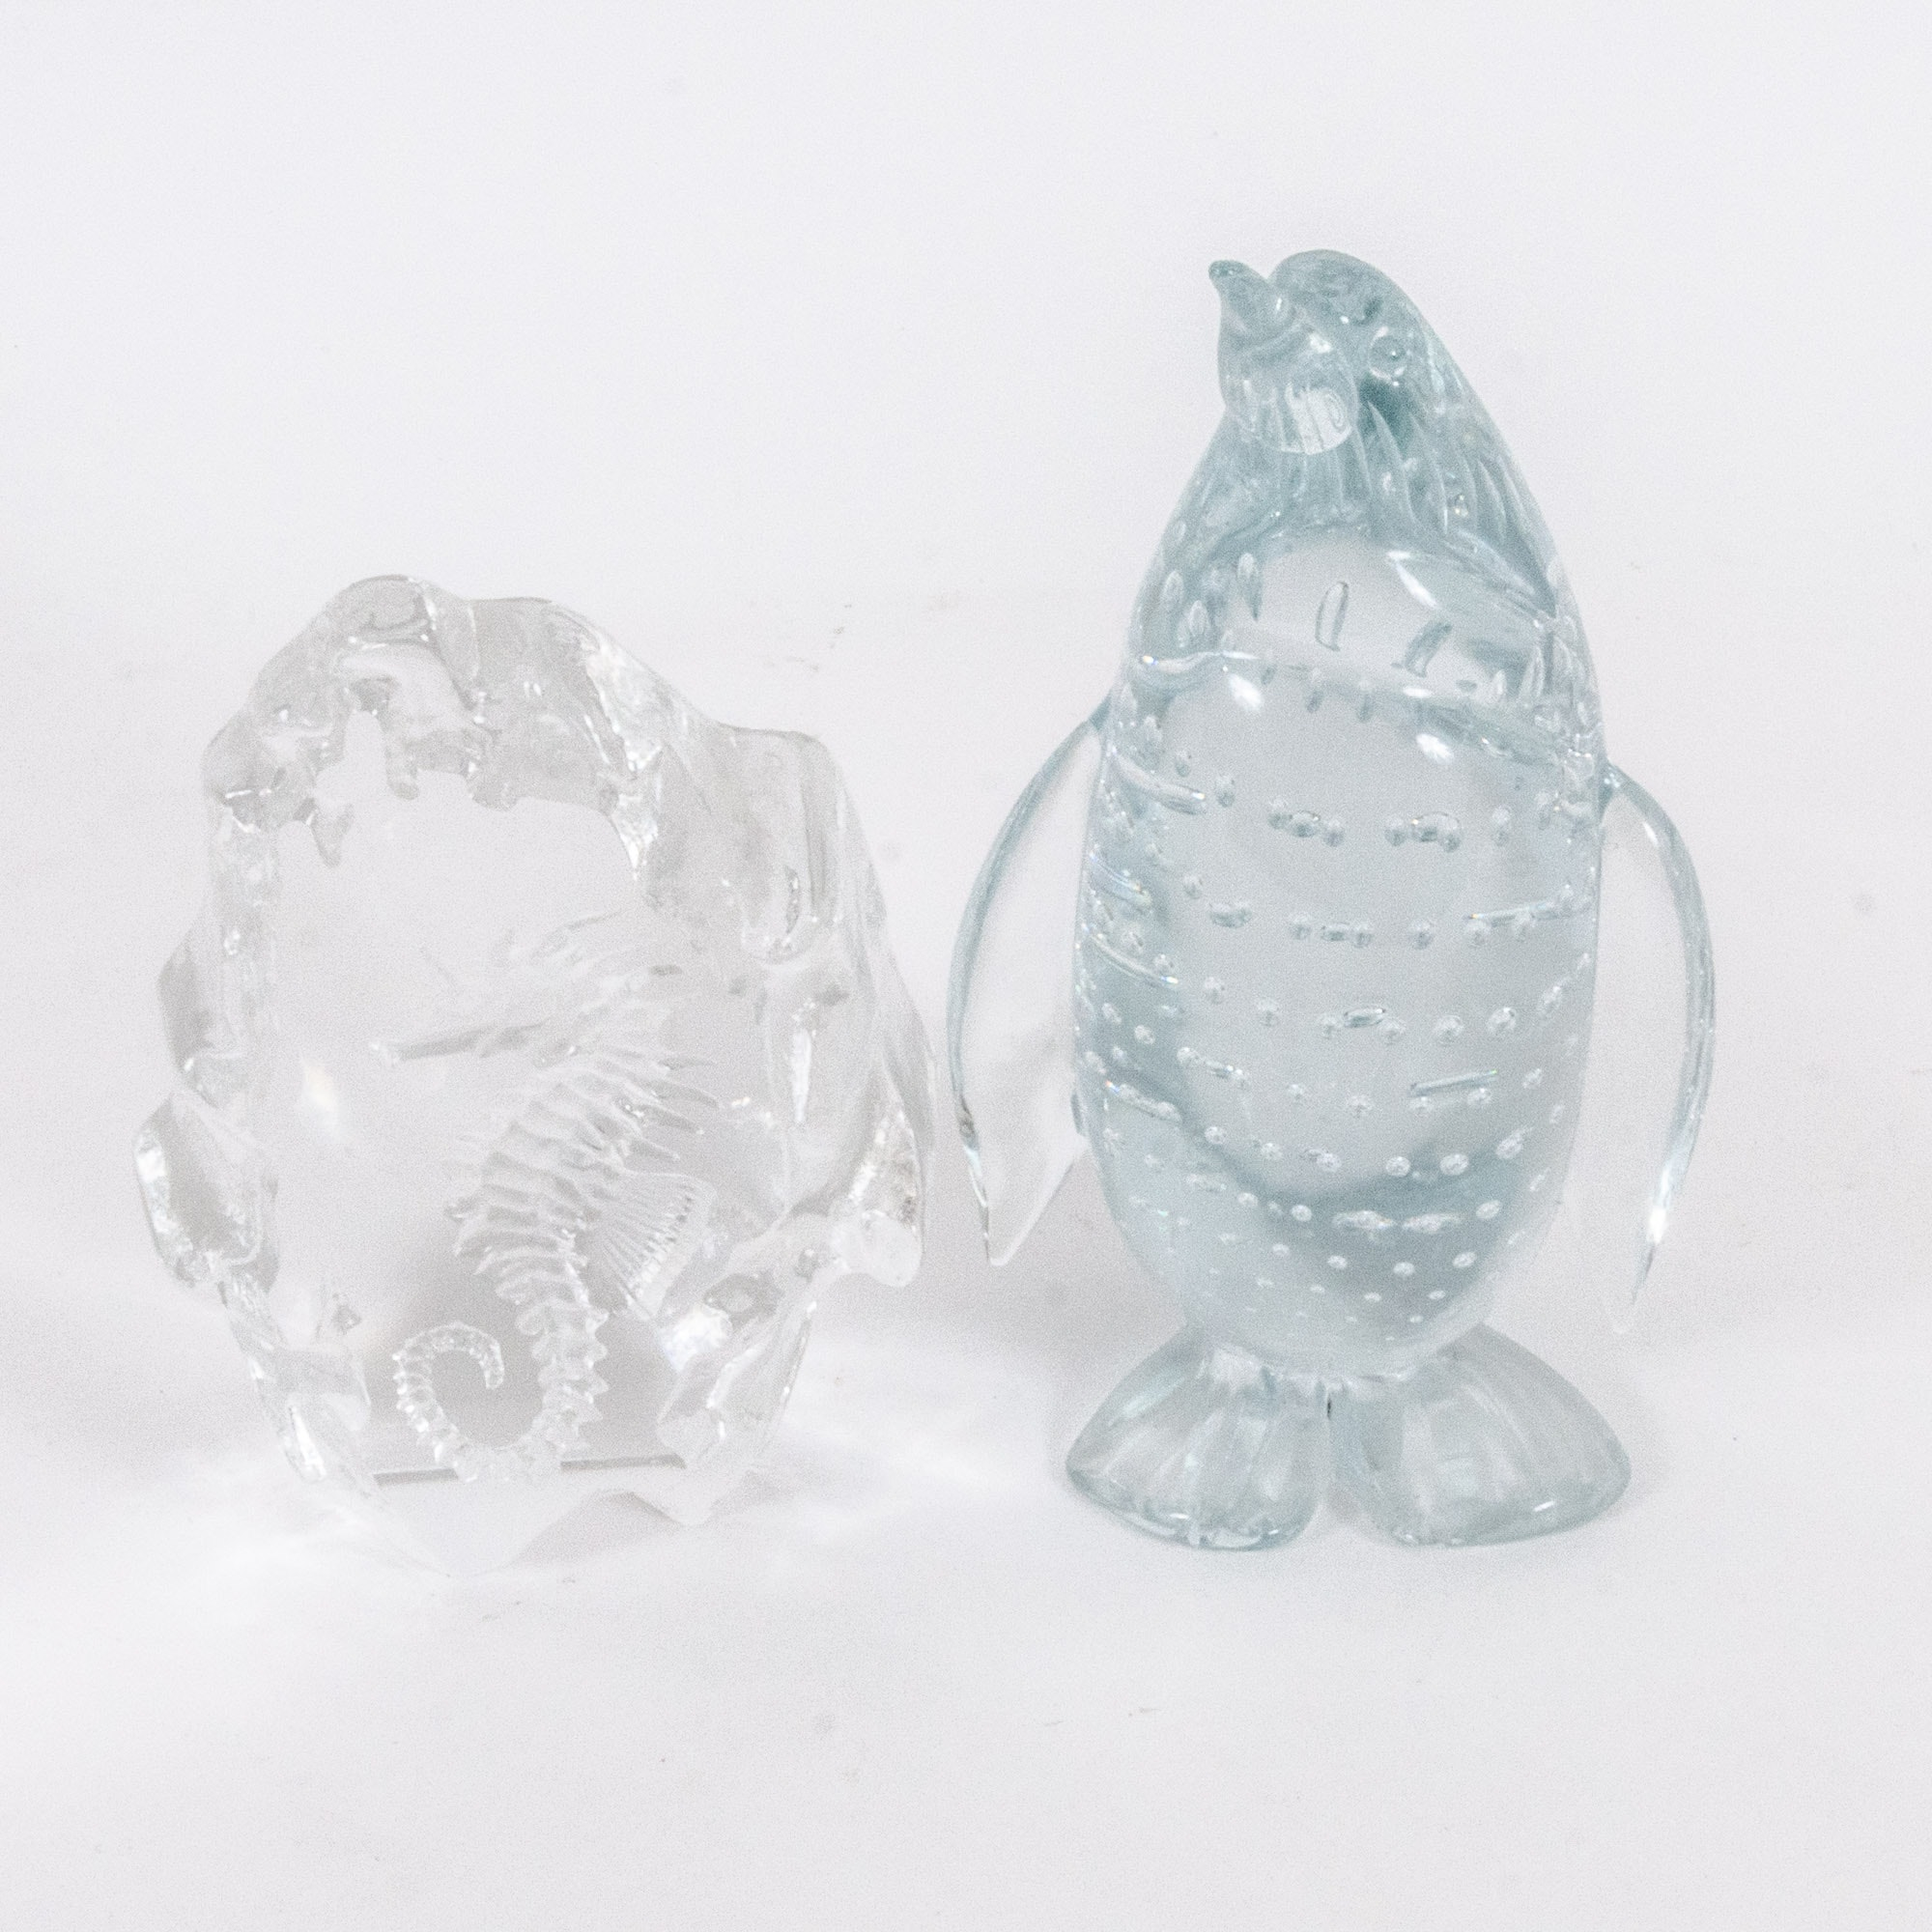 Penguin and Seahorse Art Glass Figures